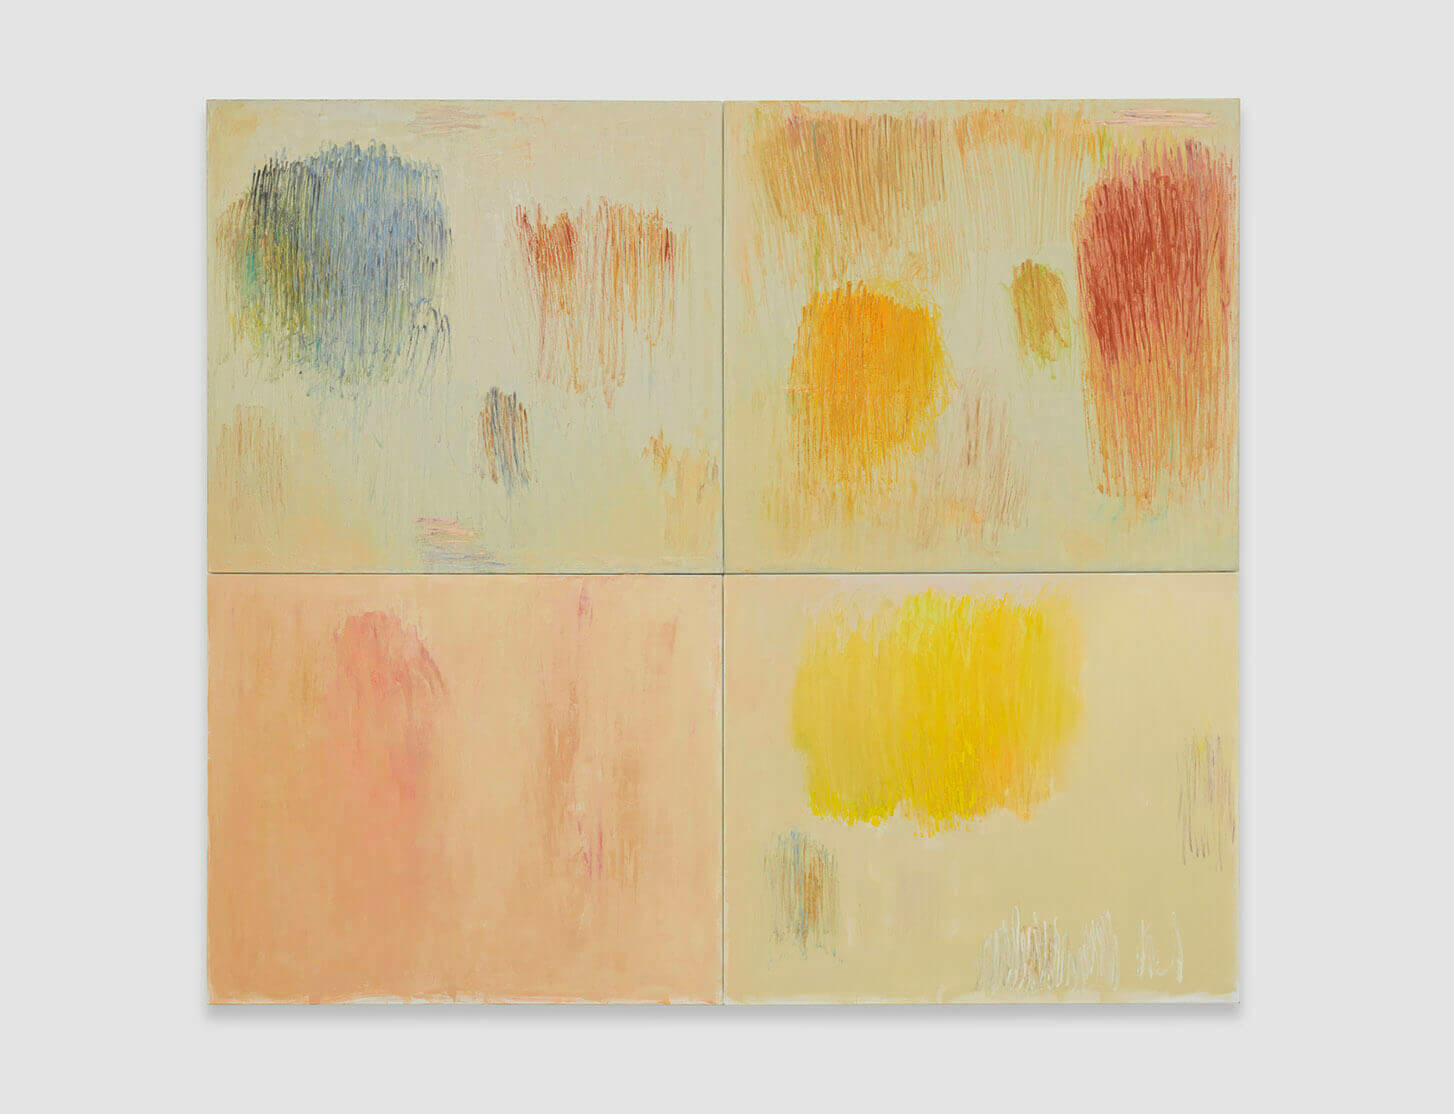 Dual presentation of works by Christopher Le Brun and Su Xinping opens at MoCAUP, Shenzhen